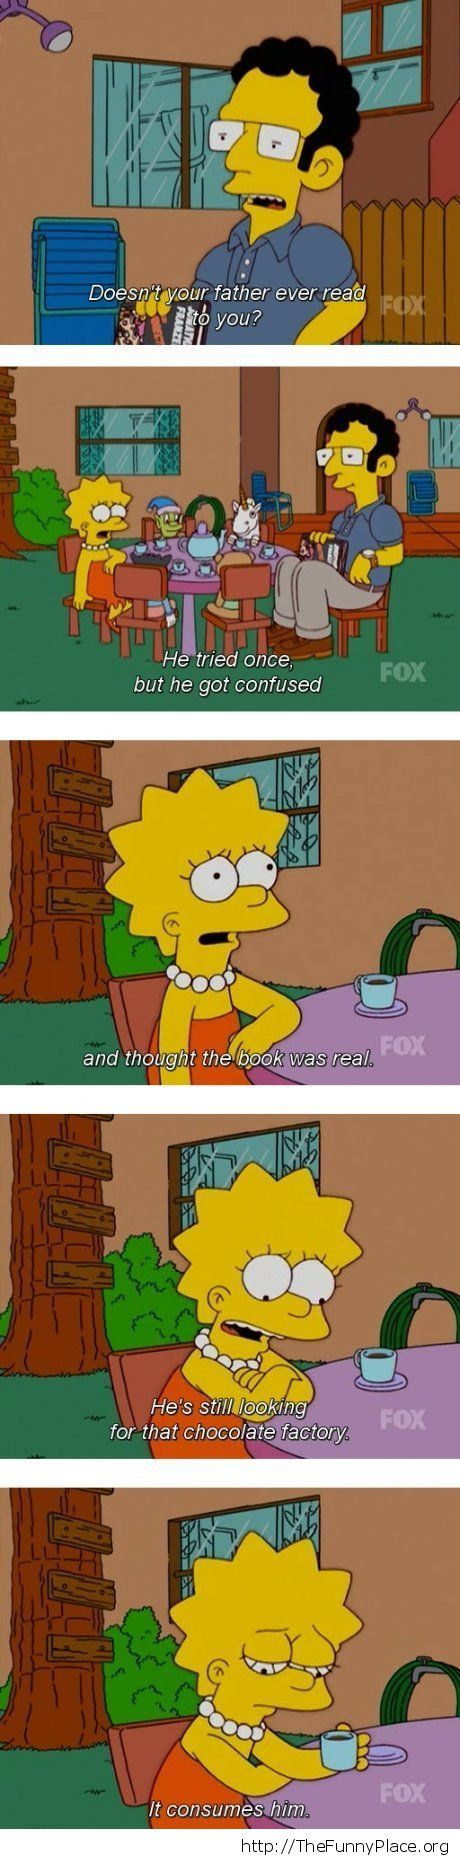 Simpsons and the Chocolate Factory